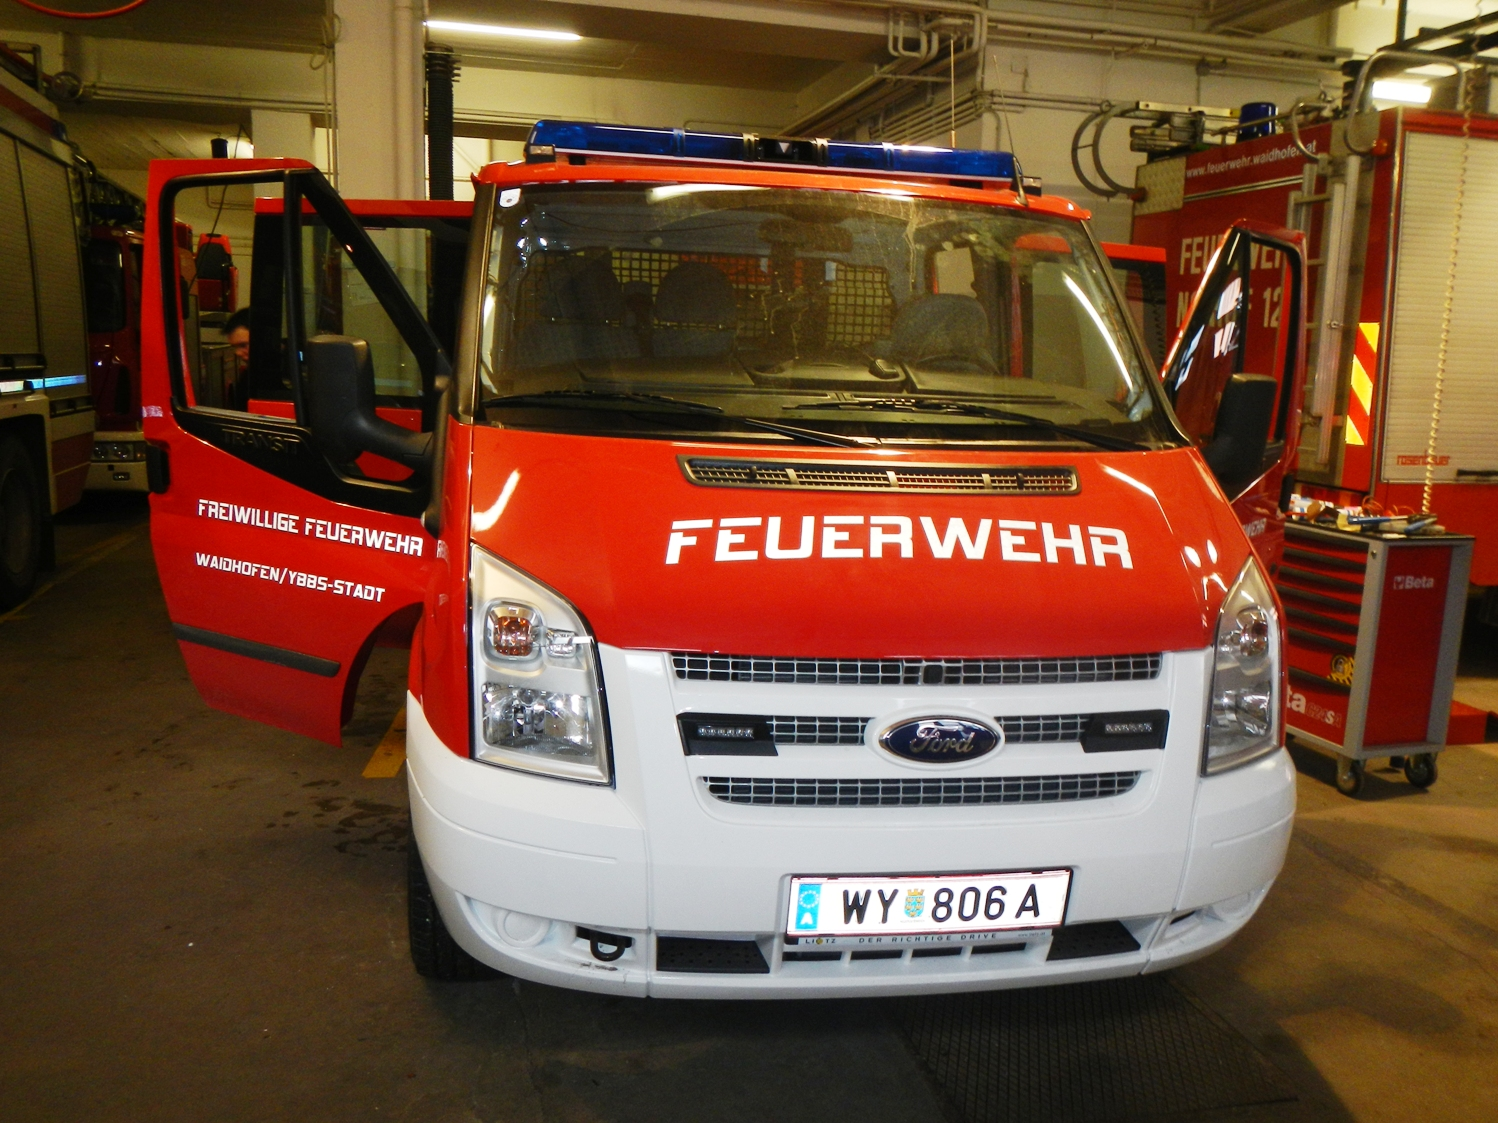 698787153 together with Ford Transit Nugget Mit Neuem Innenraum 1206443 moreover 6156338974 together with Ahk Ford 1 I206130805 as well Mercedes Sprinter. on ford transit